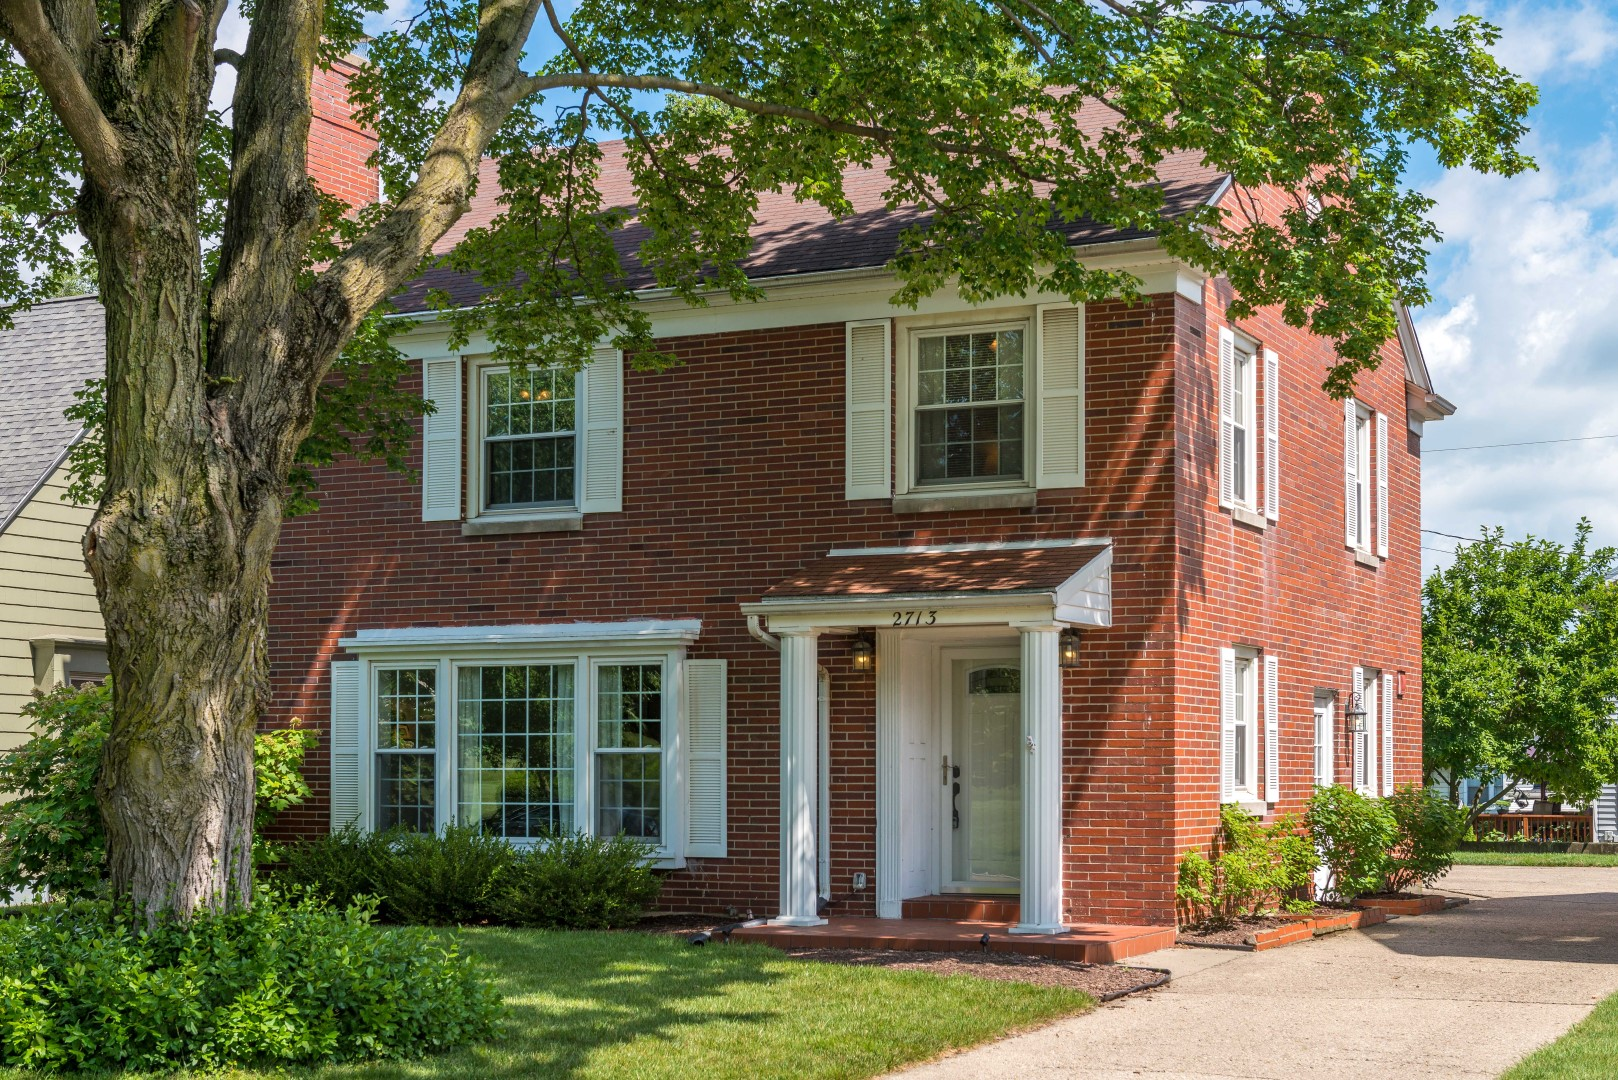 Beautiful Historical Home In Middletown Ohio For Sale